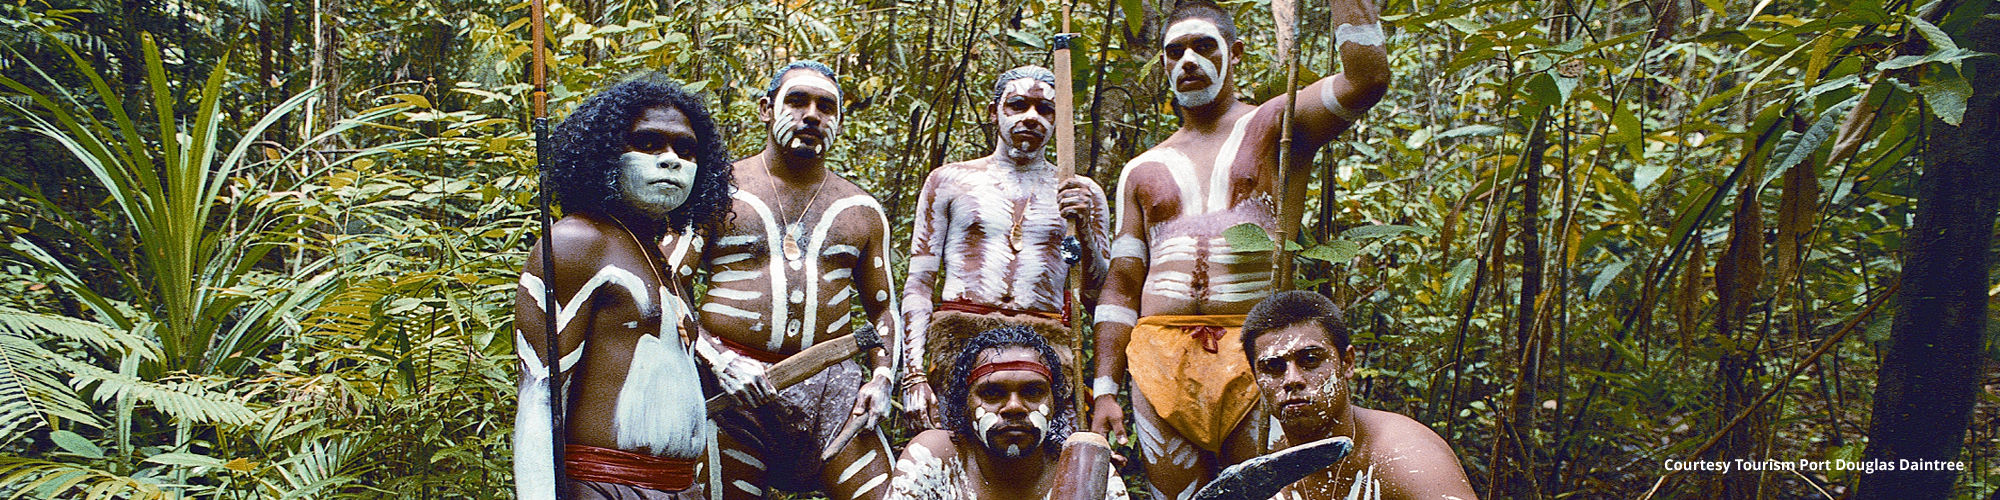 Learn About Aboriginal Culture